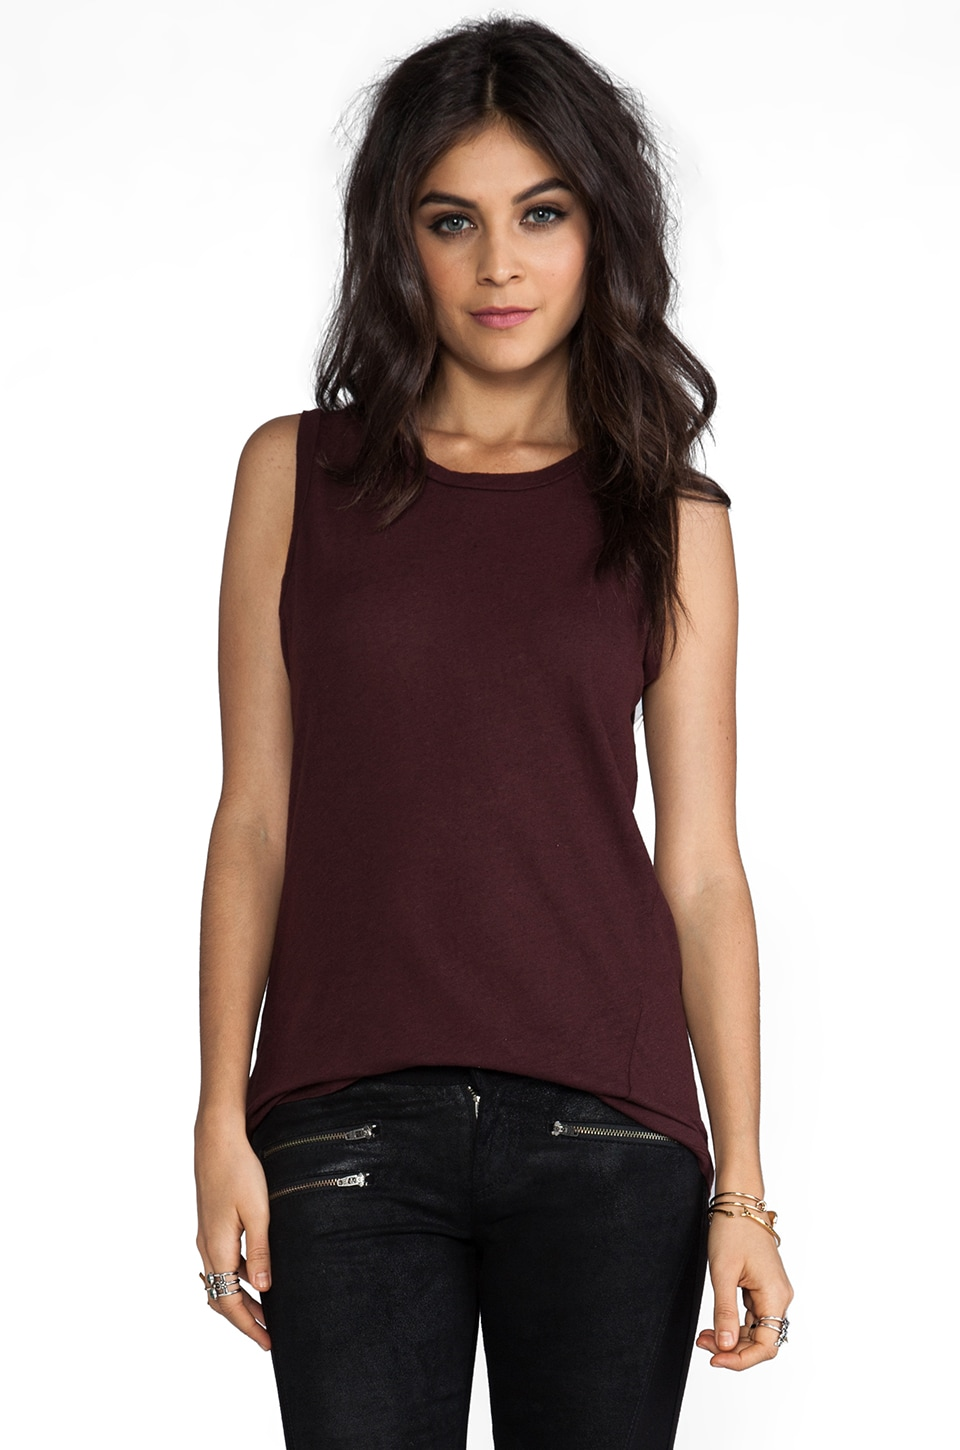 My Line Pria Muscle Tank in Oxblood